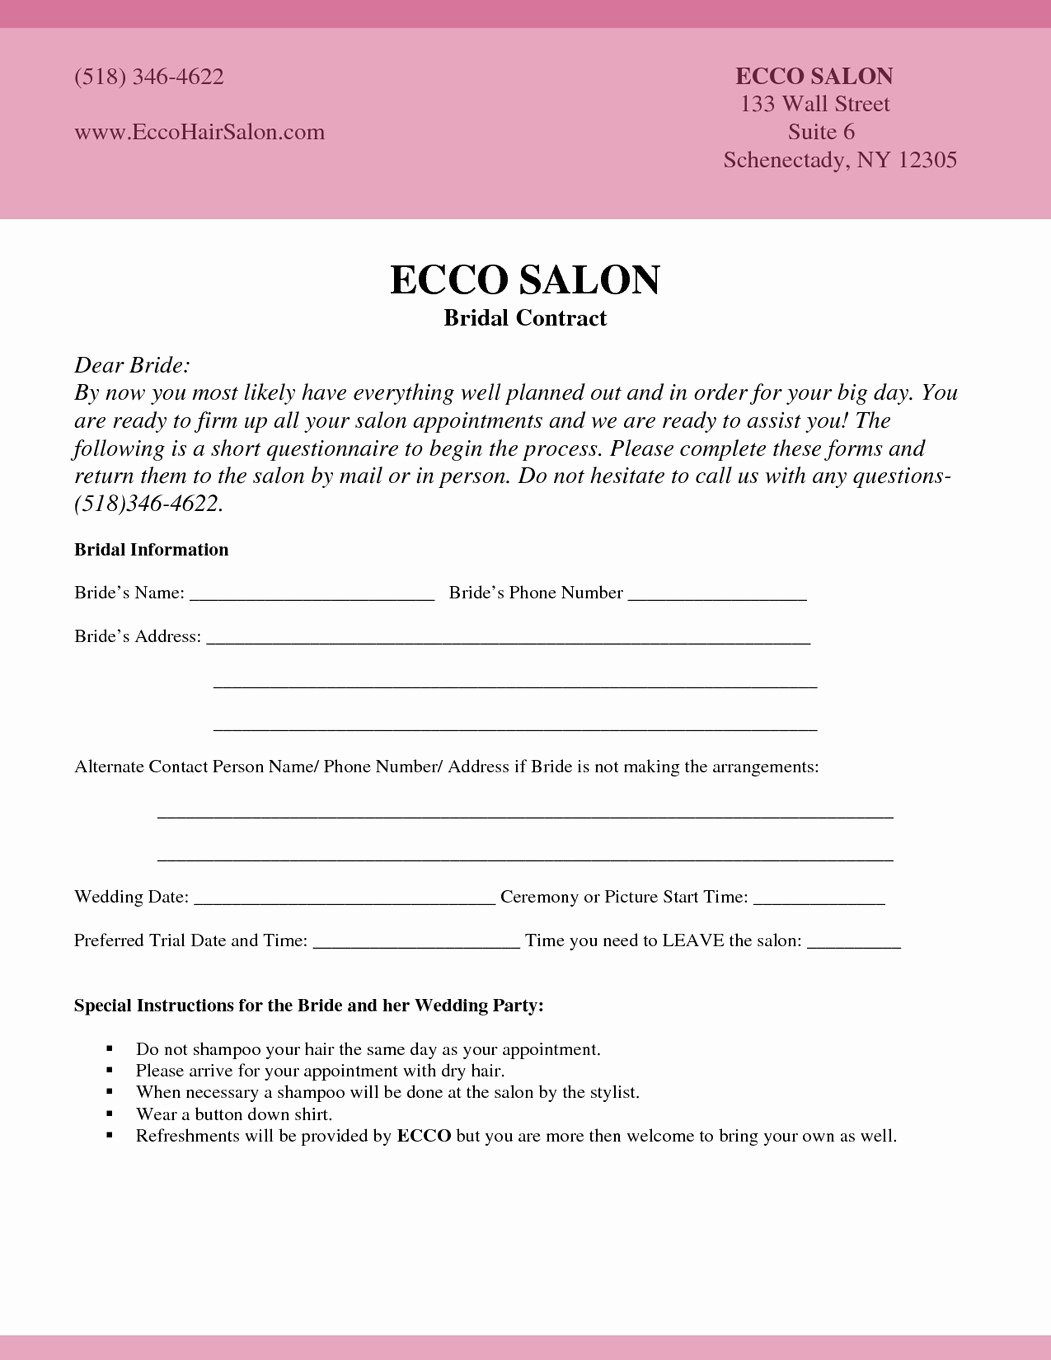 Freelance Makeup Artist Contract Template Best Of Makeup Bridal Contract